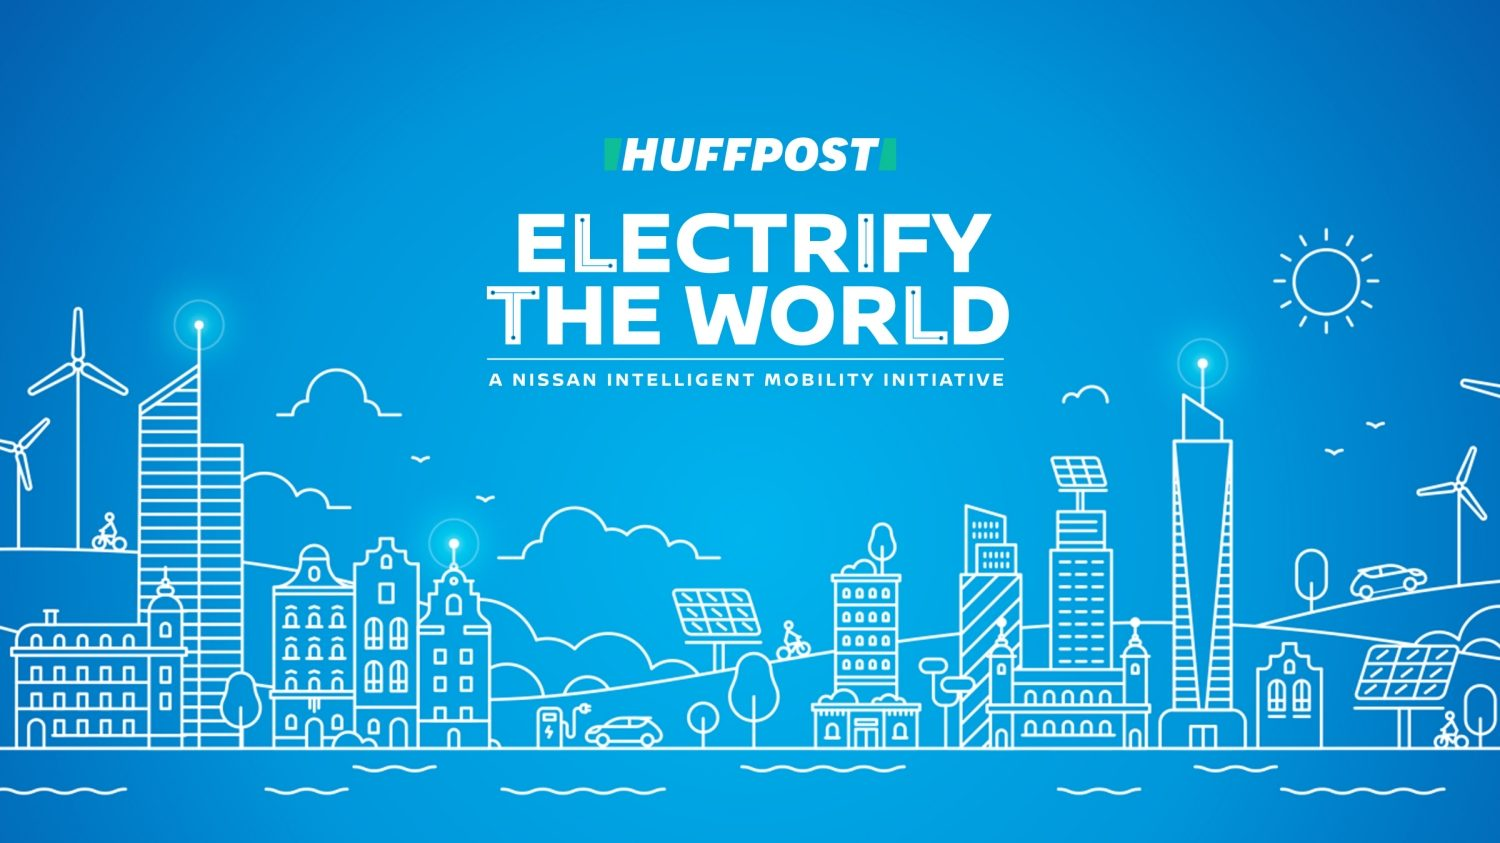 Nissan Electrify the World X Huffington Post